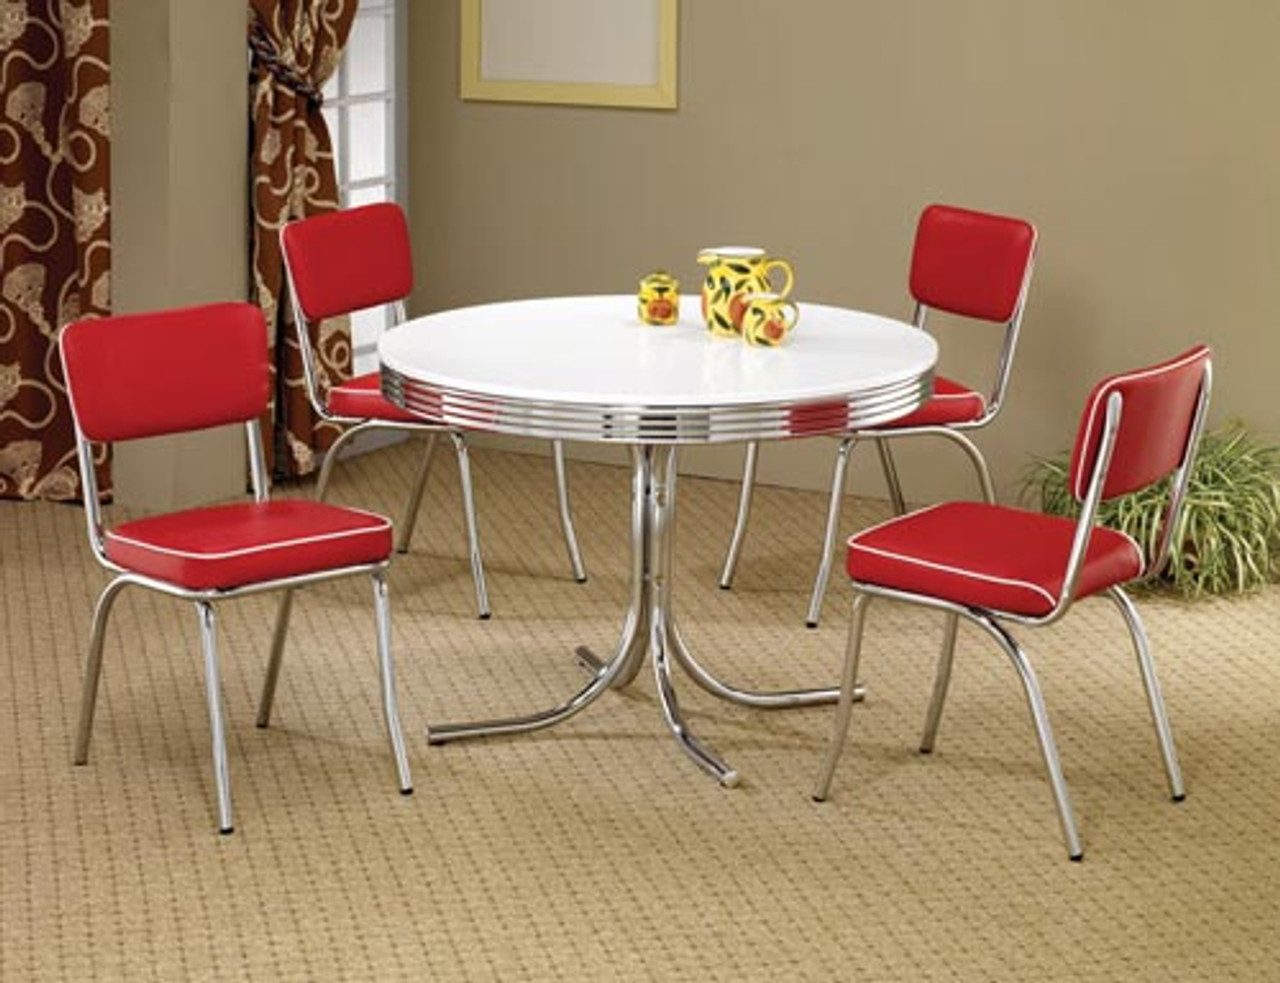 Outstanding 50S Style Round Chrome Retro Dining Table W Four Red Chairs Home Interior And Landscaping Mentranervesignezvosmurscom